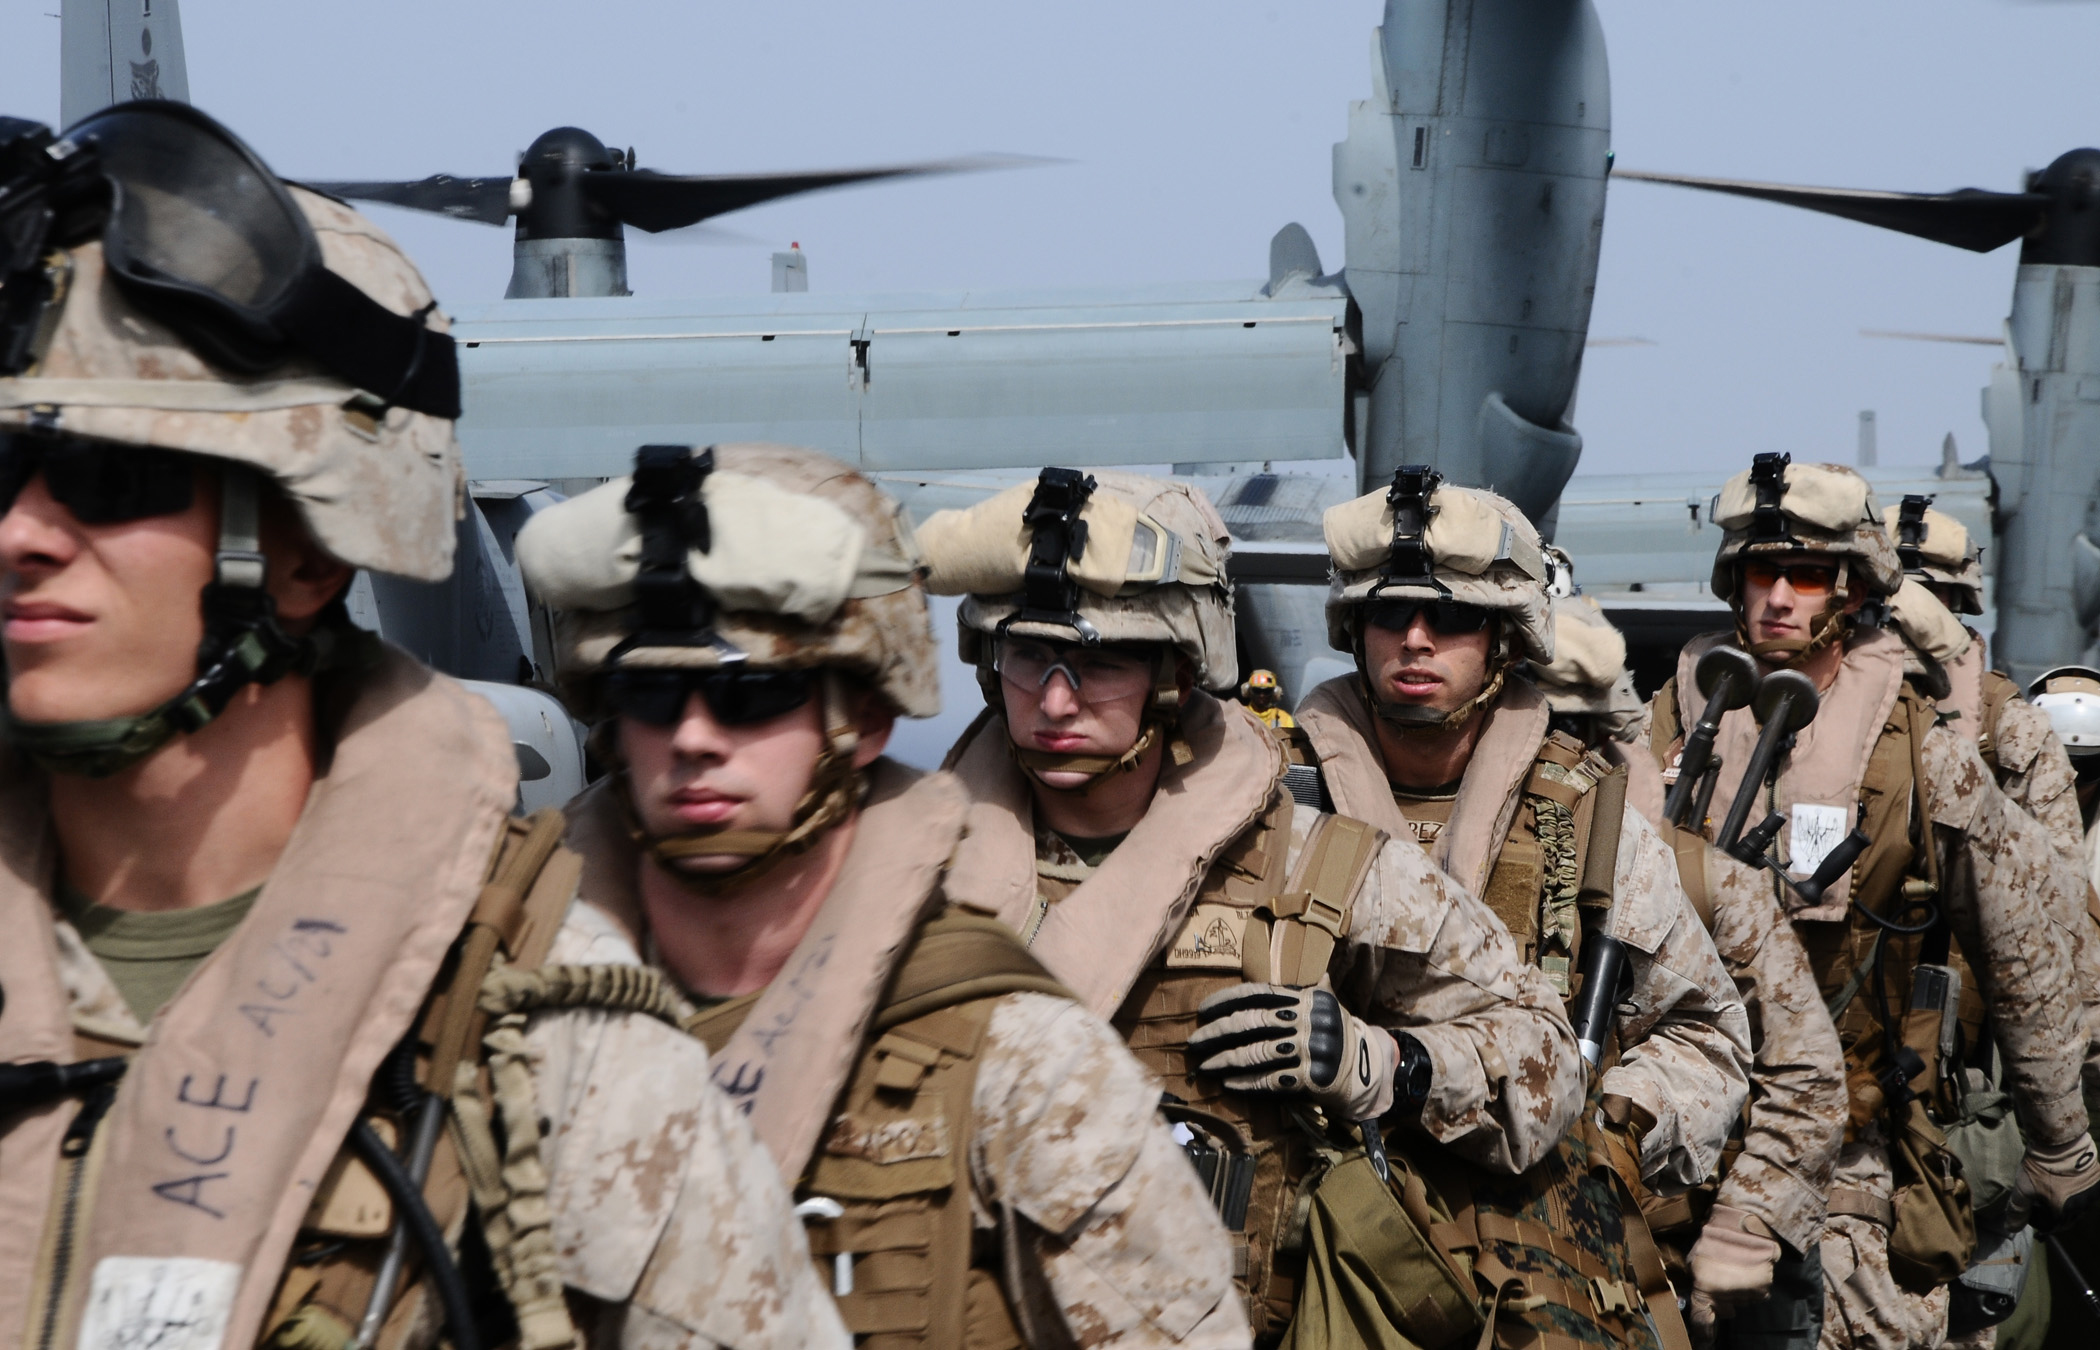 Defense.gov_News_Photo_110604-N-EC658-028_-_Marines_assigned_to_the_22nd_Marine_Expeditionary_Unit_prepare_to_conduct_training_exercises_aboard_the_multipurpose_amphibious_assault_ship_USS.jpg